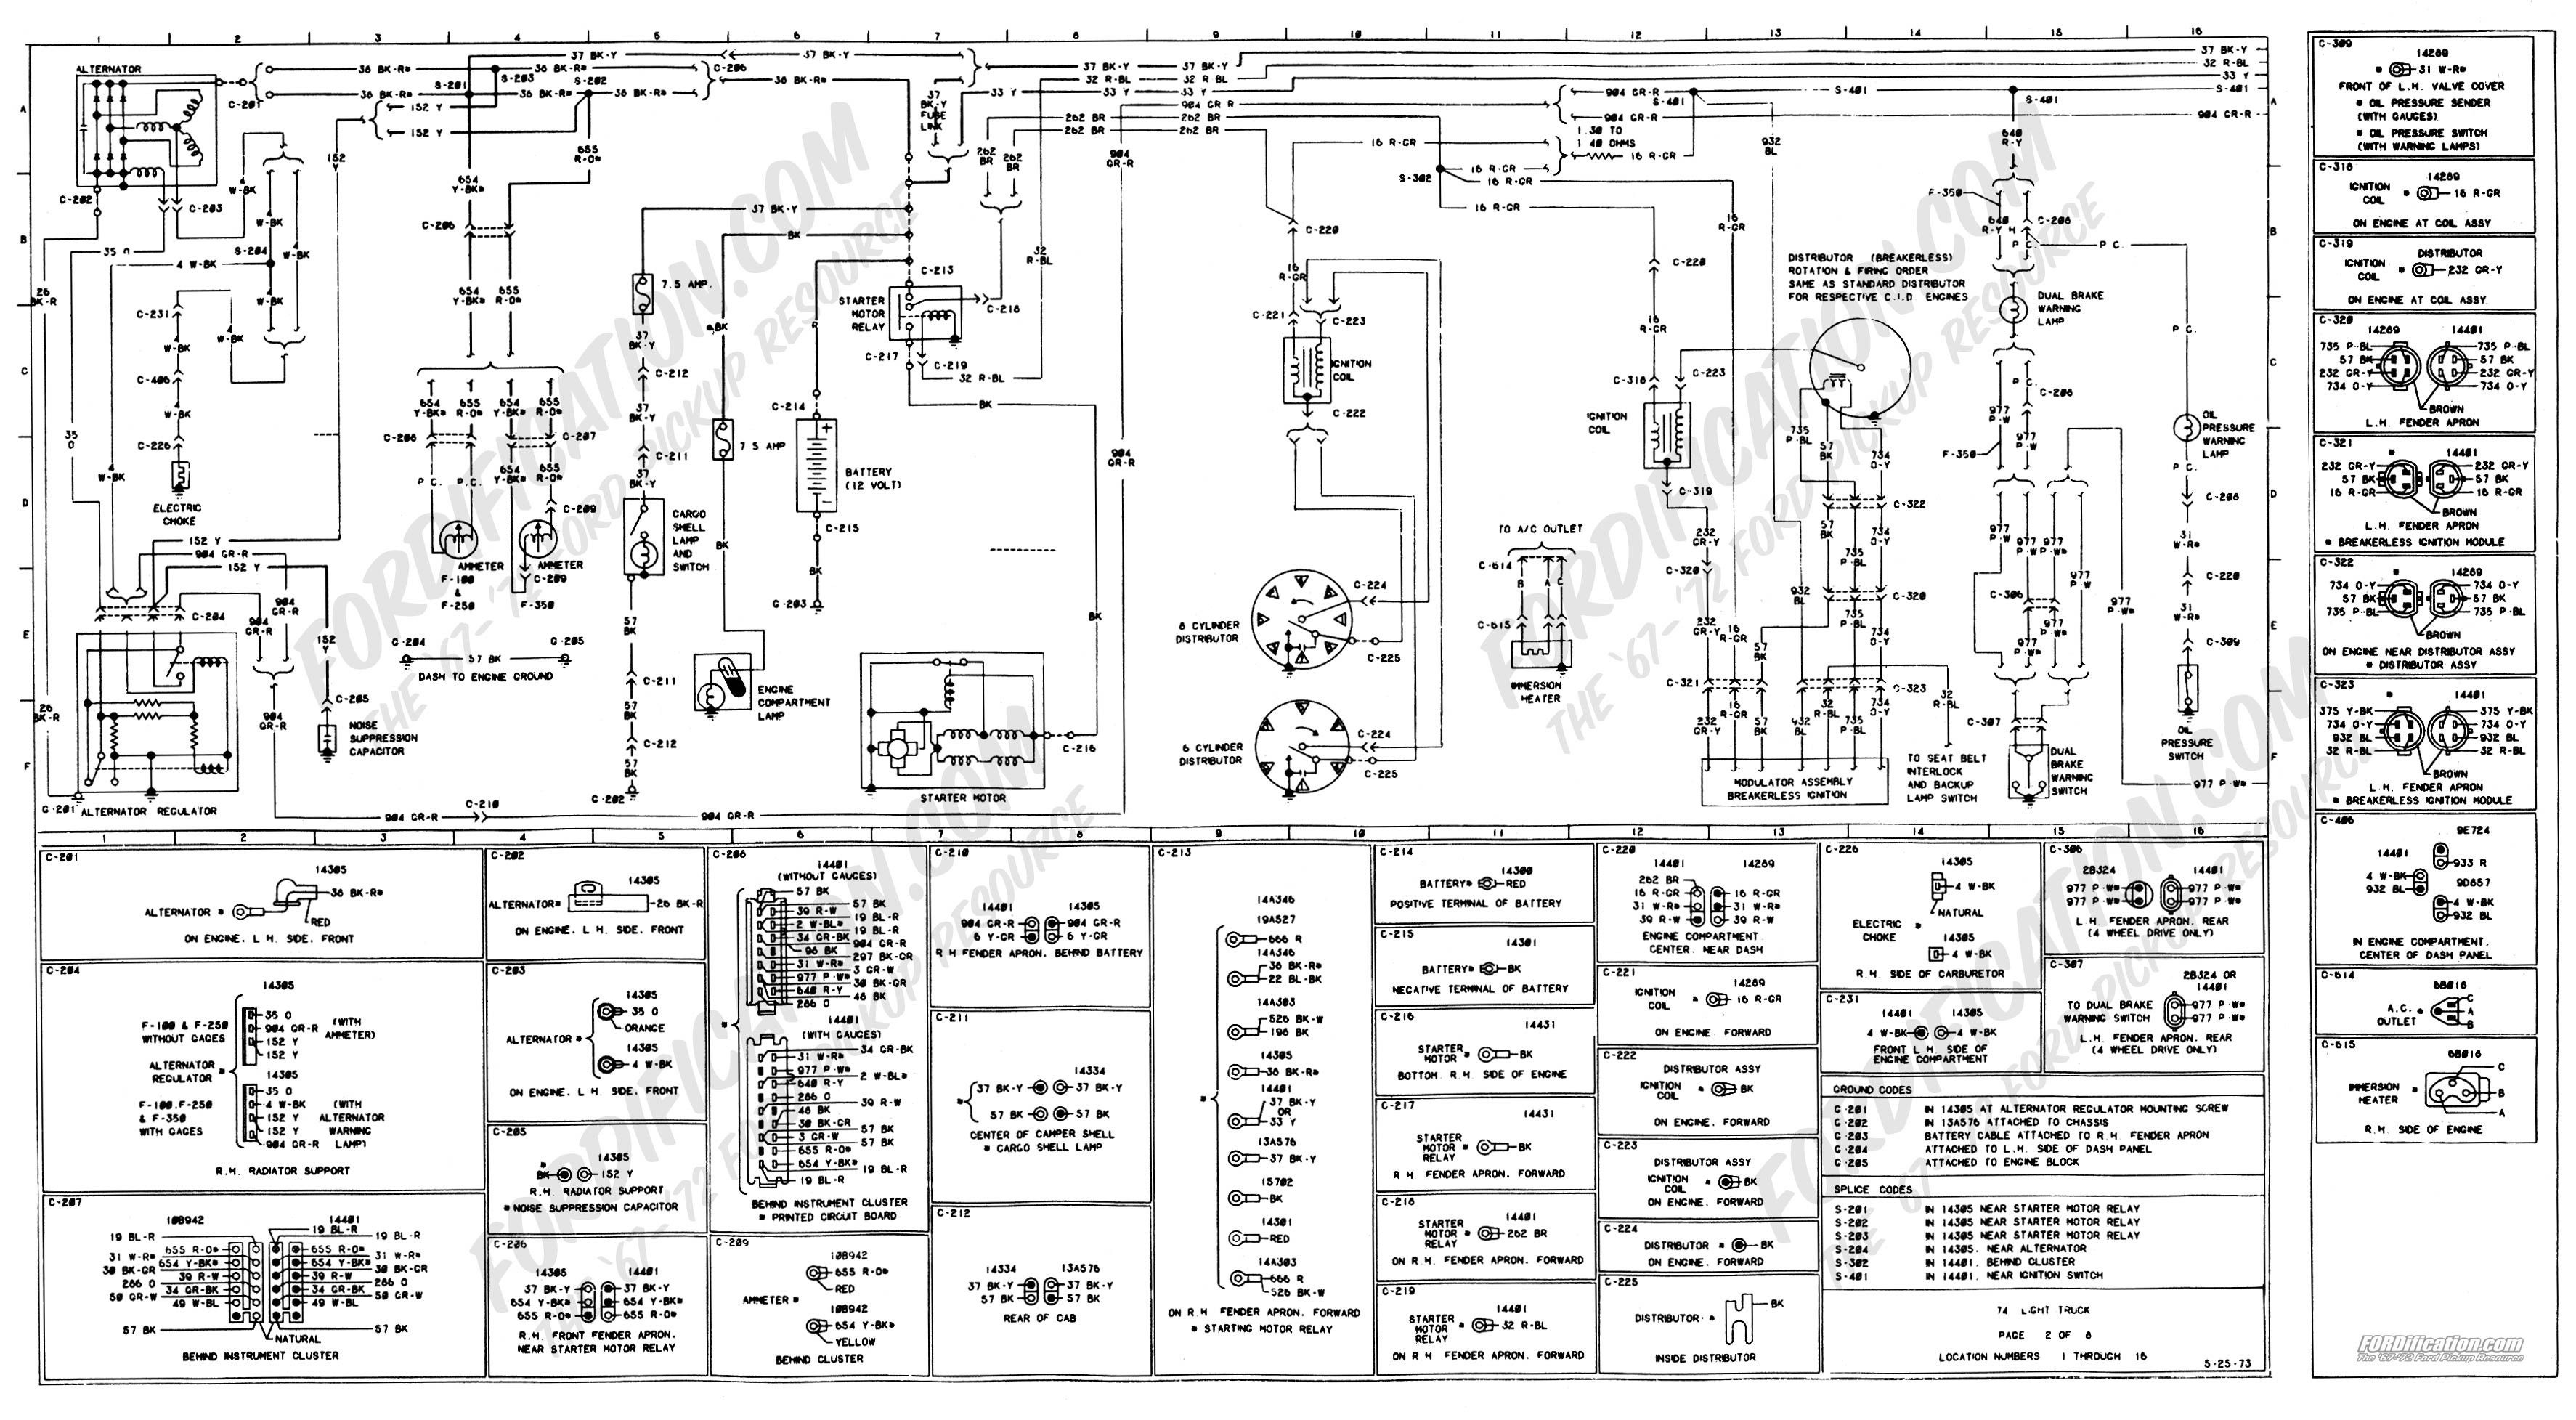 Unique Automotive Electrical Schematic Diagram Wiringdiagram